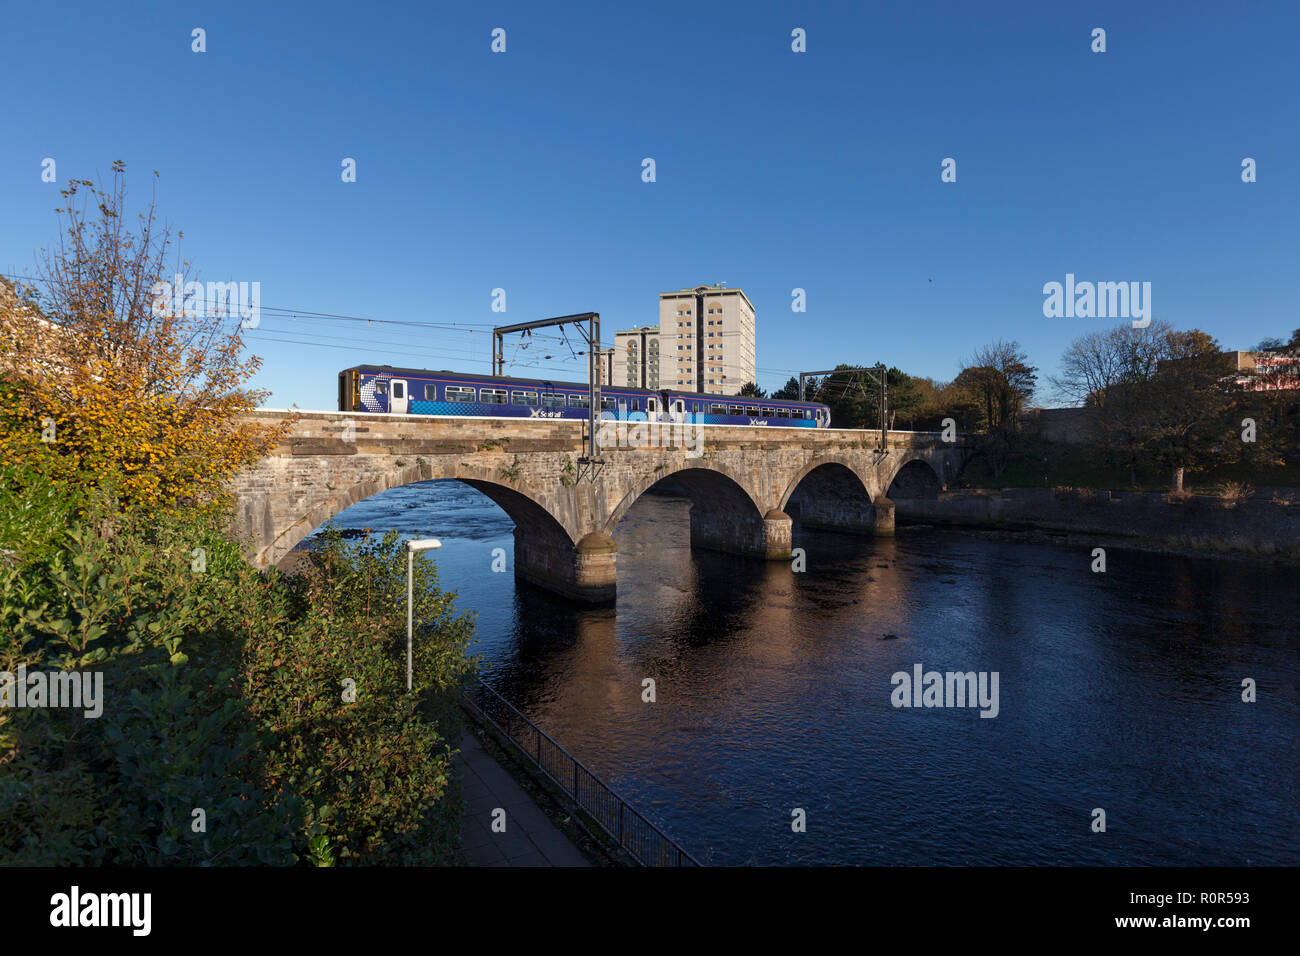 A Scotrail class 156 diesel sprinter train arriving at Ayr crossing the viaduct over the river Ayr - Stock Image